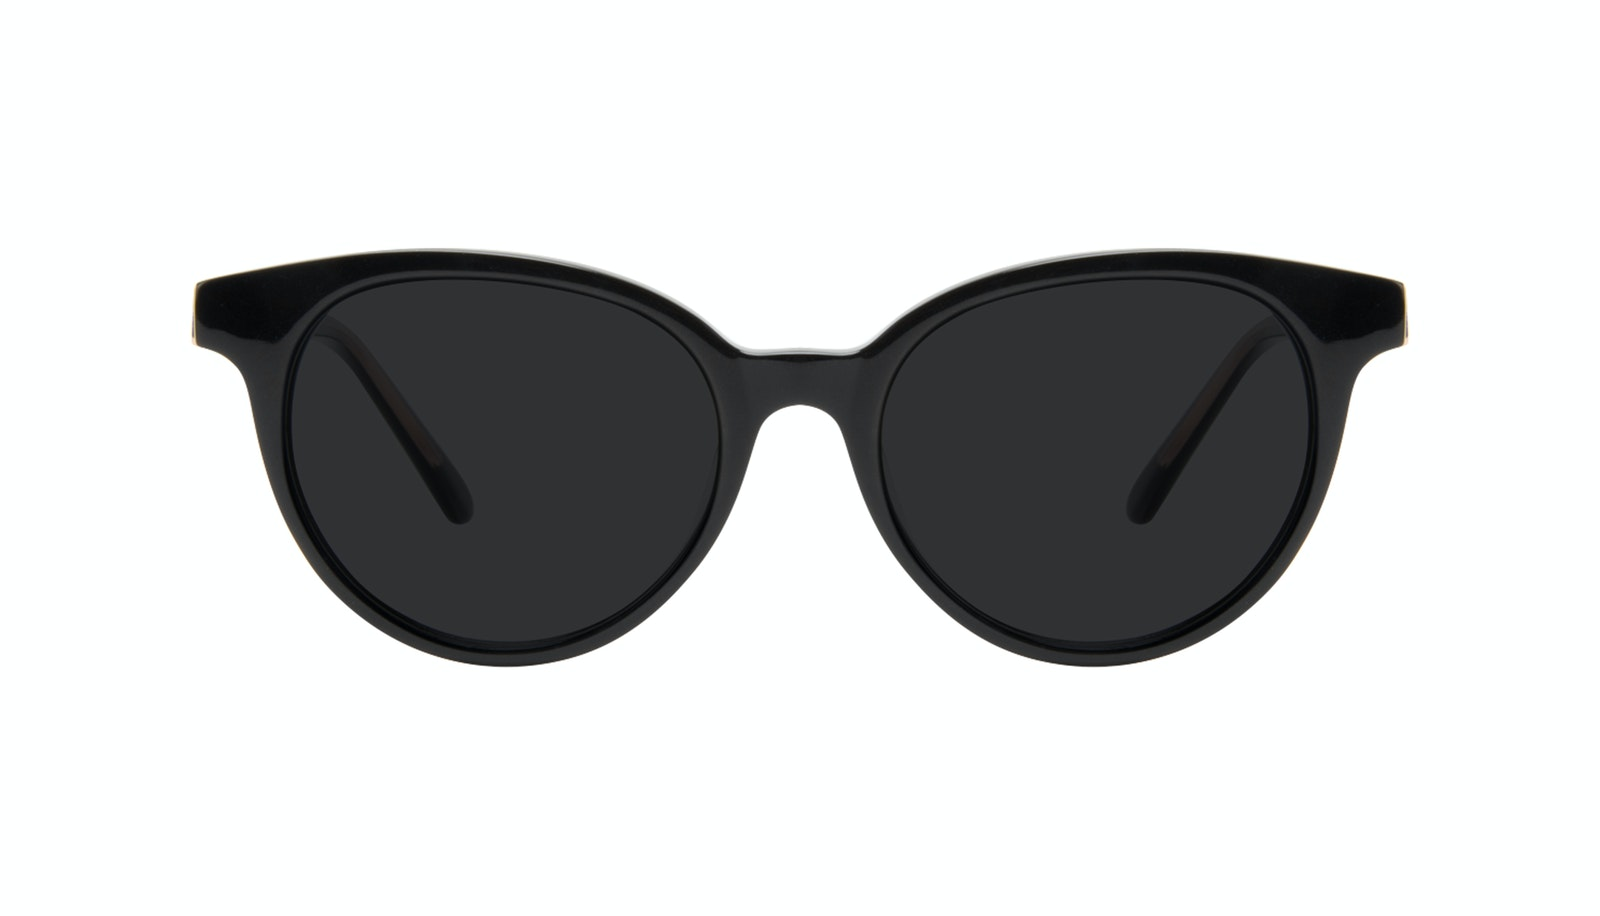 Affordable Fashion Glasses Round Sunglasses Women Bright Black